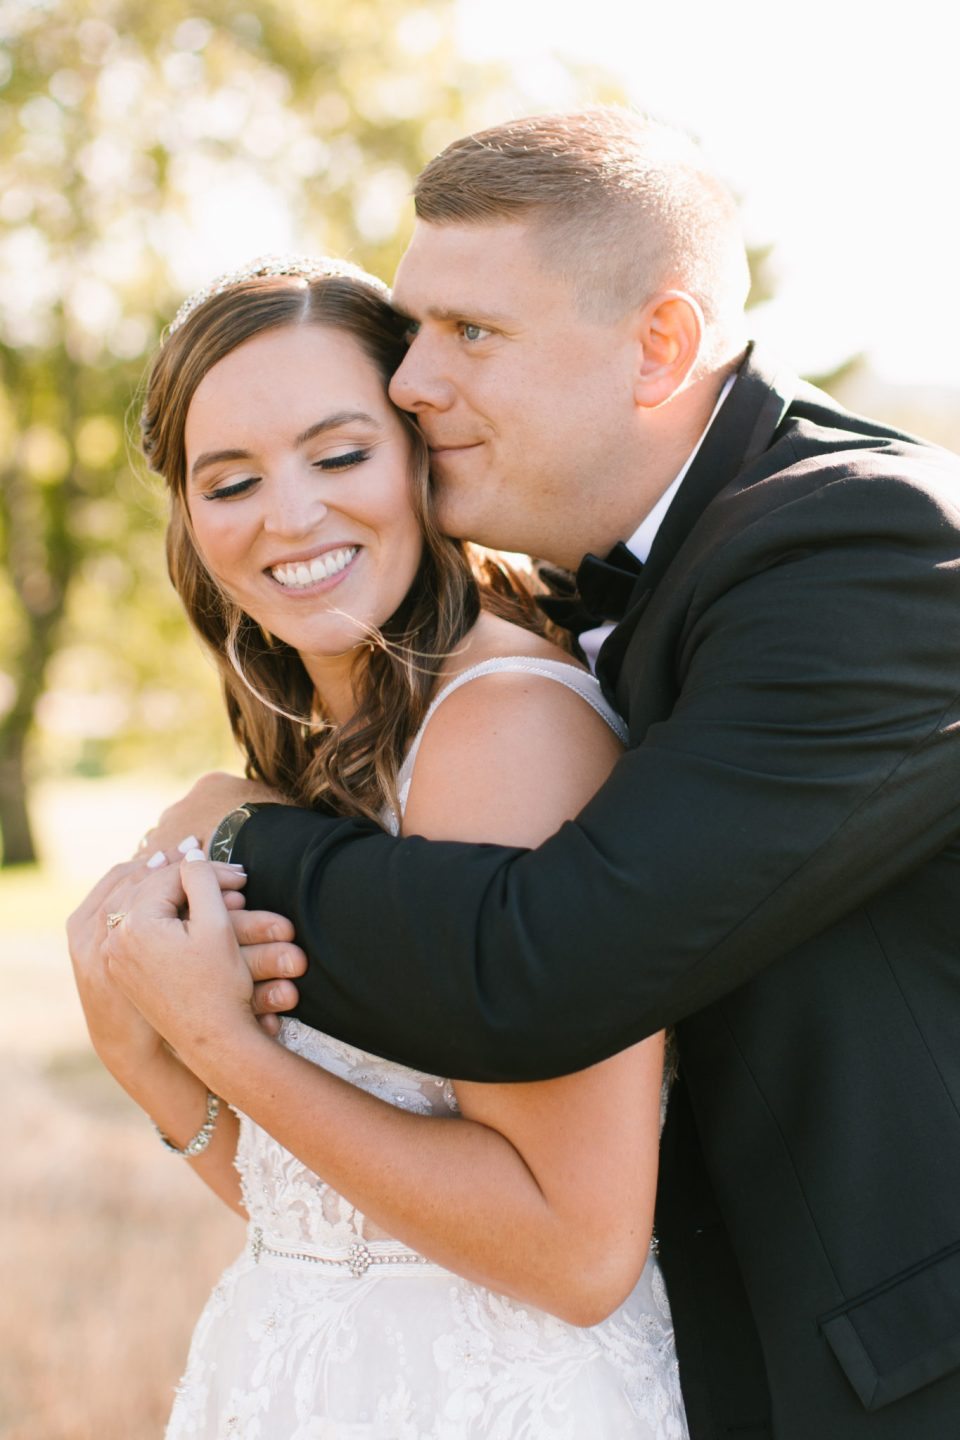 NJ wedding photos by Ashley Mac Photographs